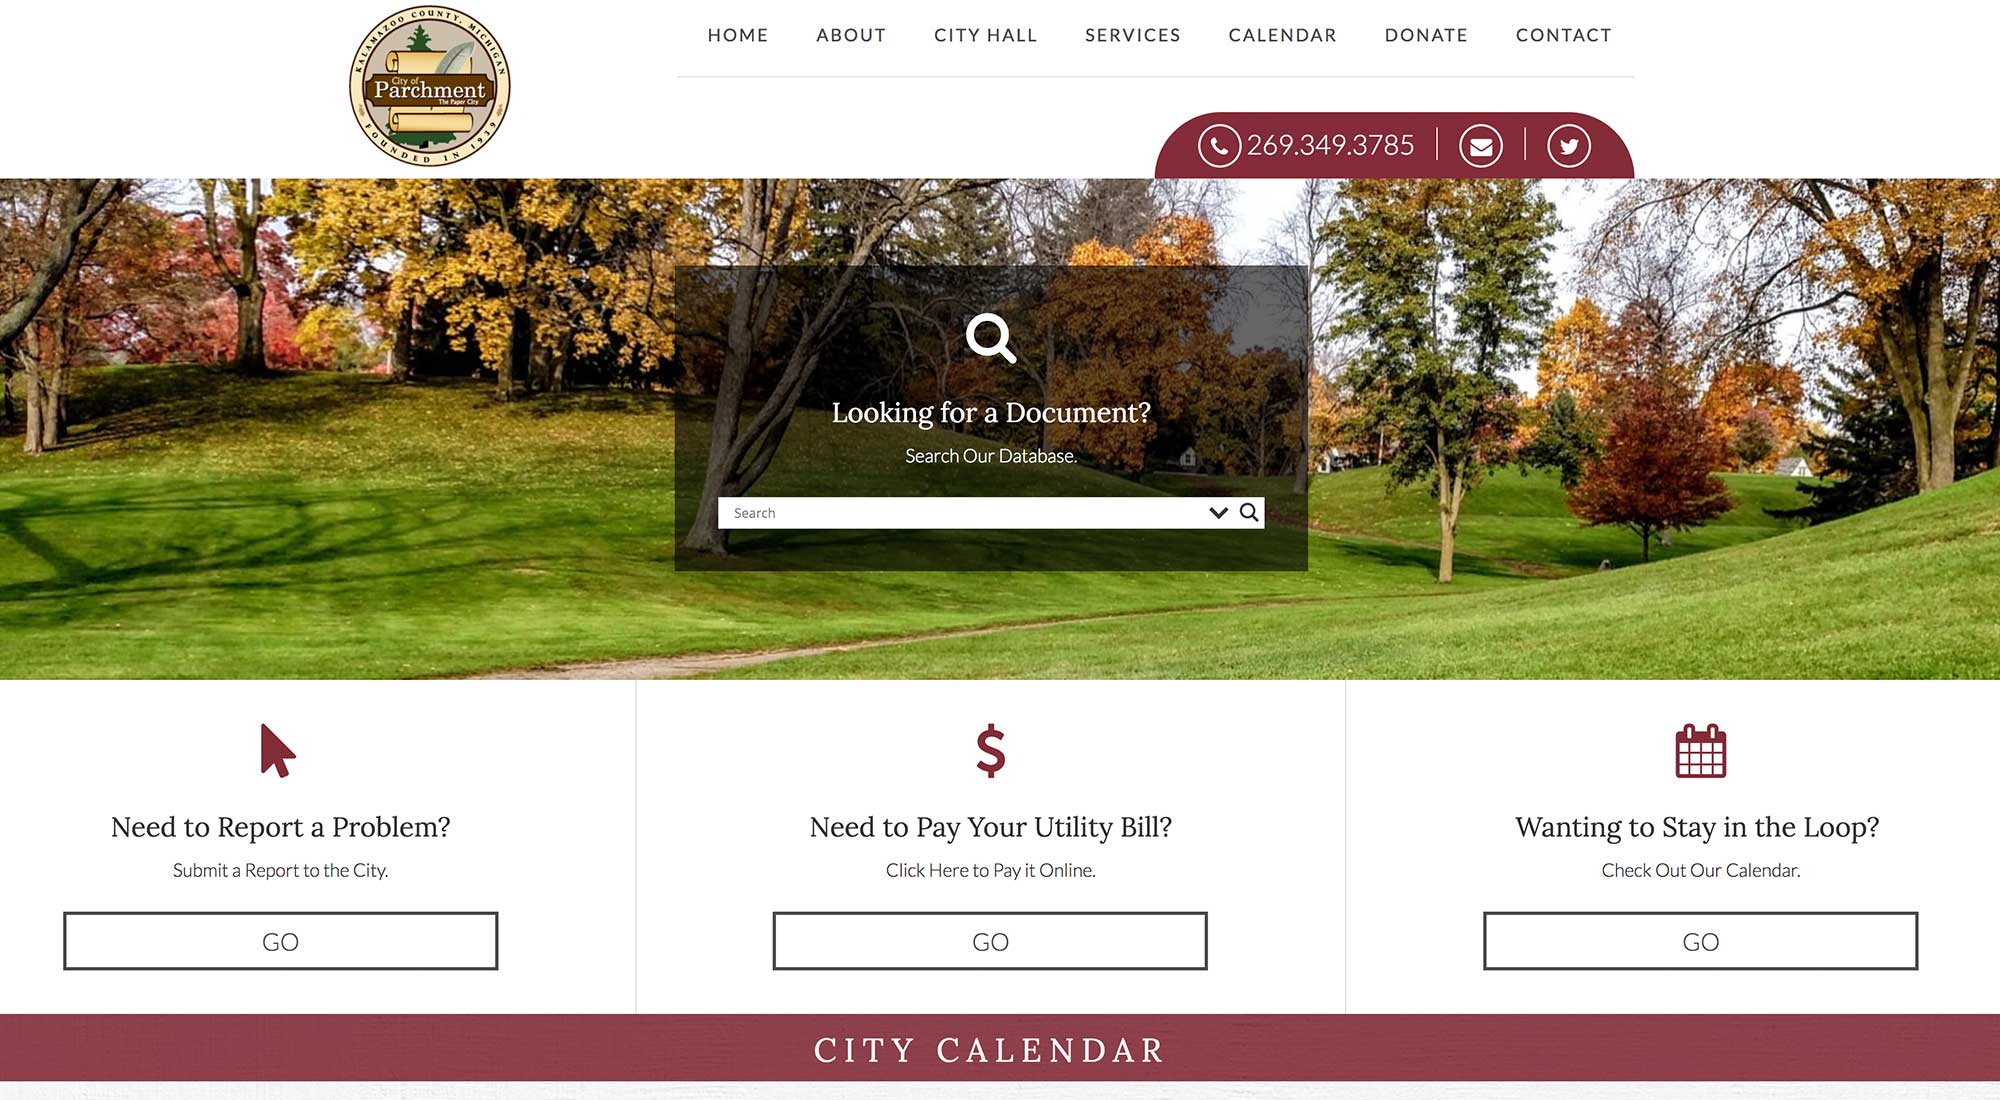 City of Parchment Website Designer Pixelvine Creative